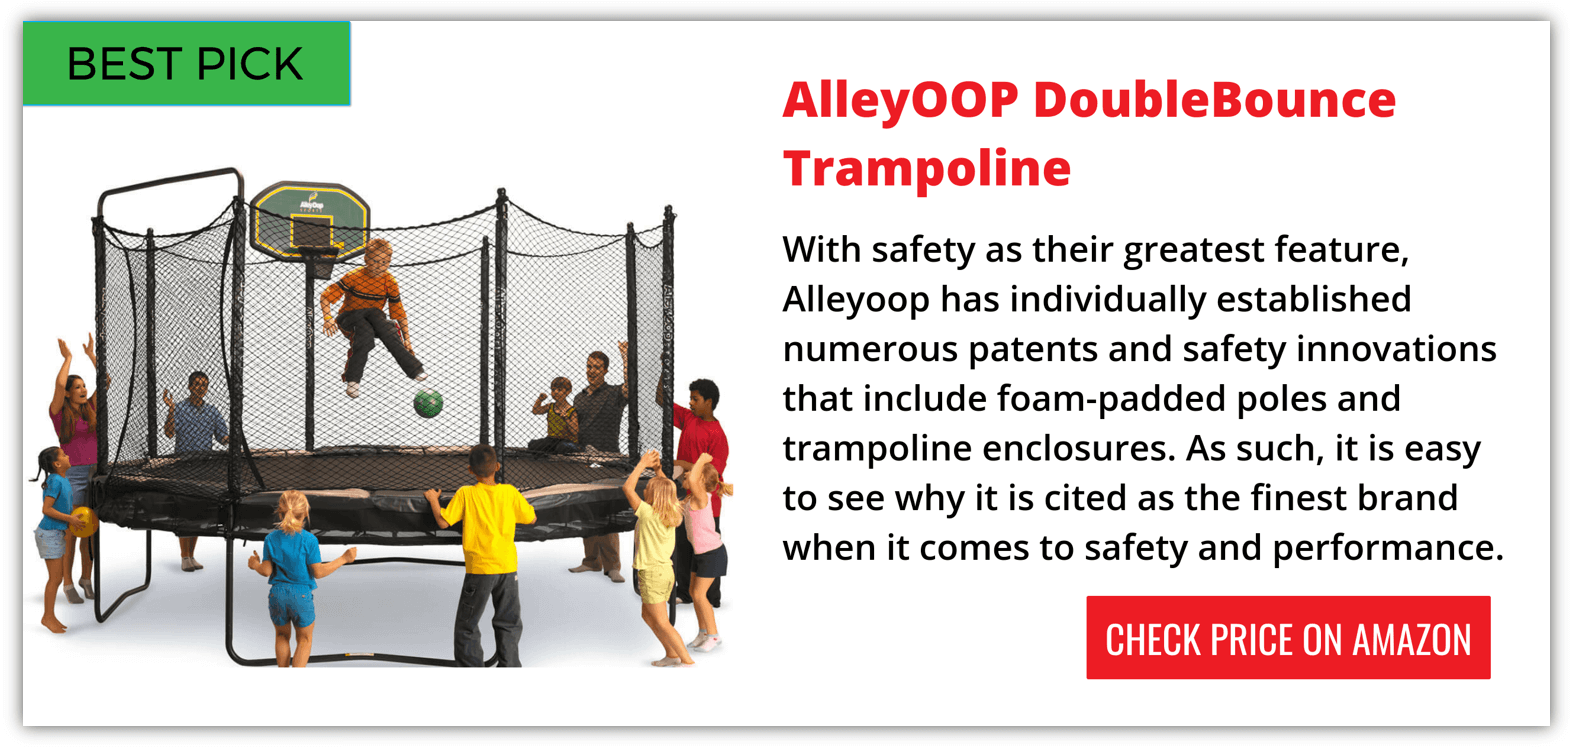 Alleyoop Trampoline Reviews